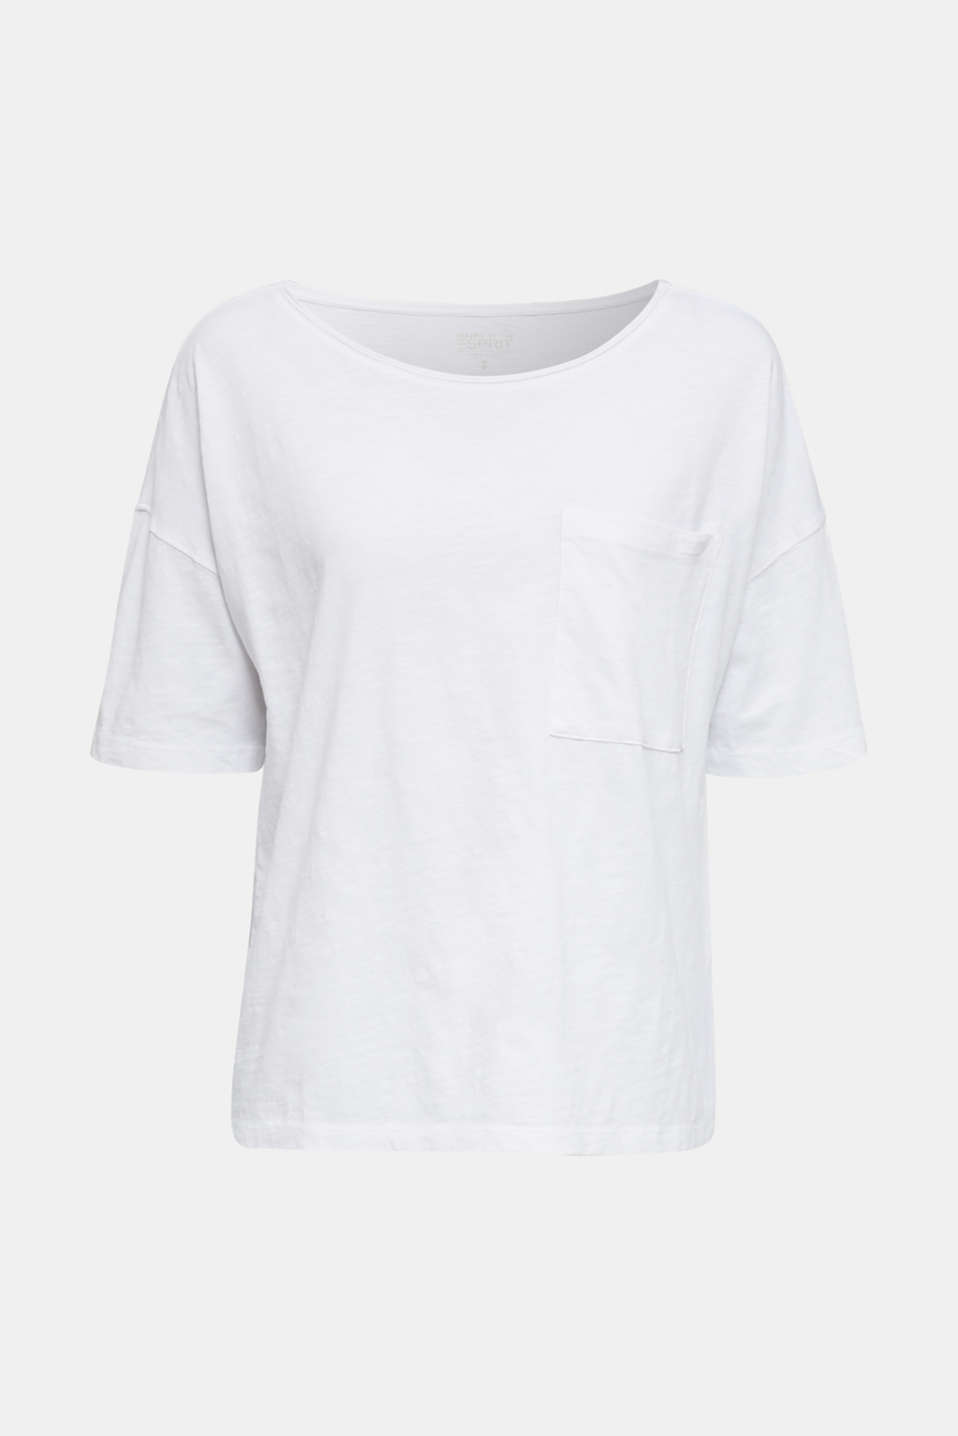 T-shirt with a pocket, 100% organic cotton, WHITE, detail image number 7